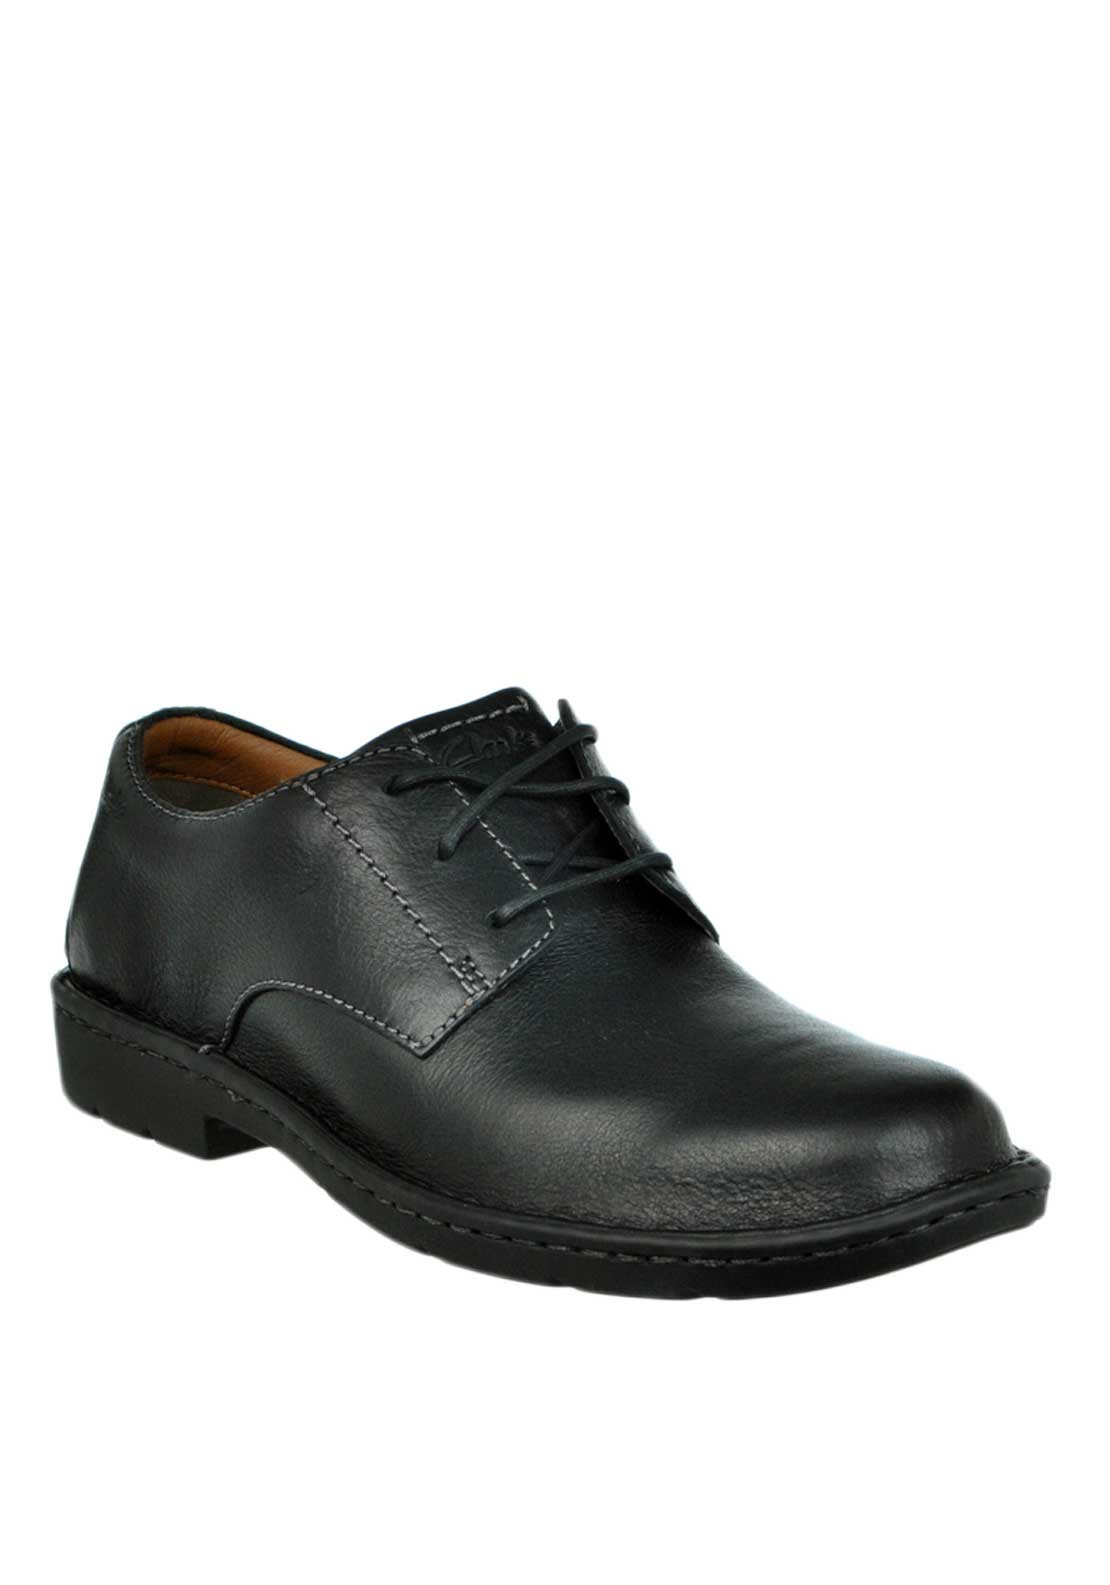 Clarks Mens Stratton Way Lace Up Leather Shoe, Black